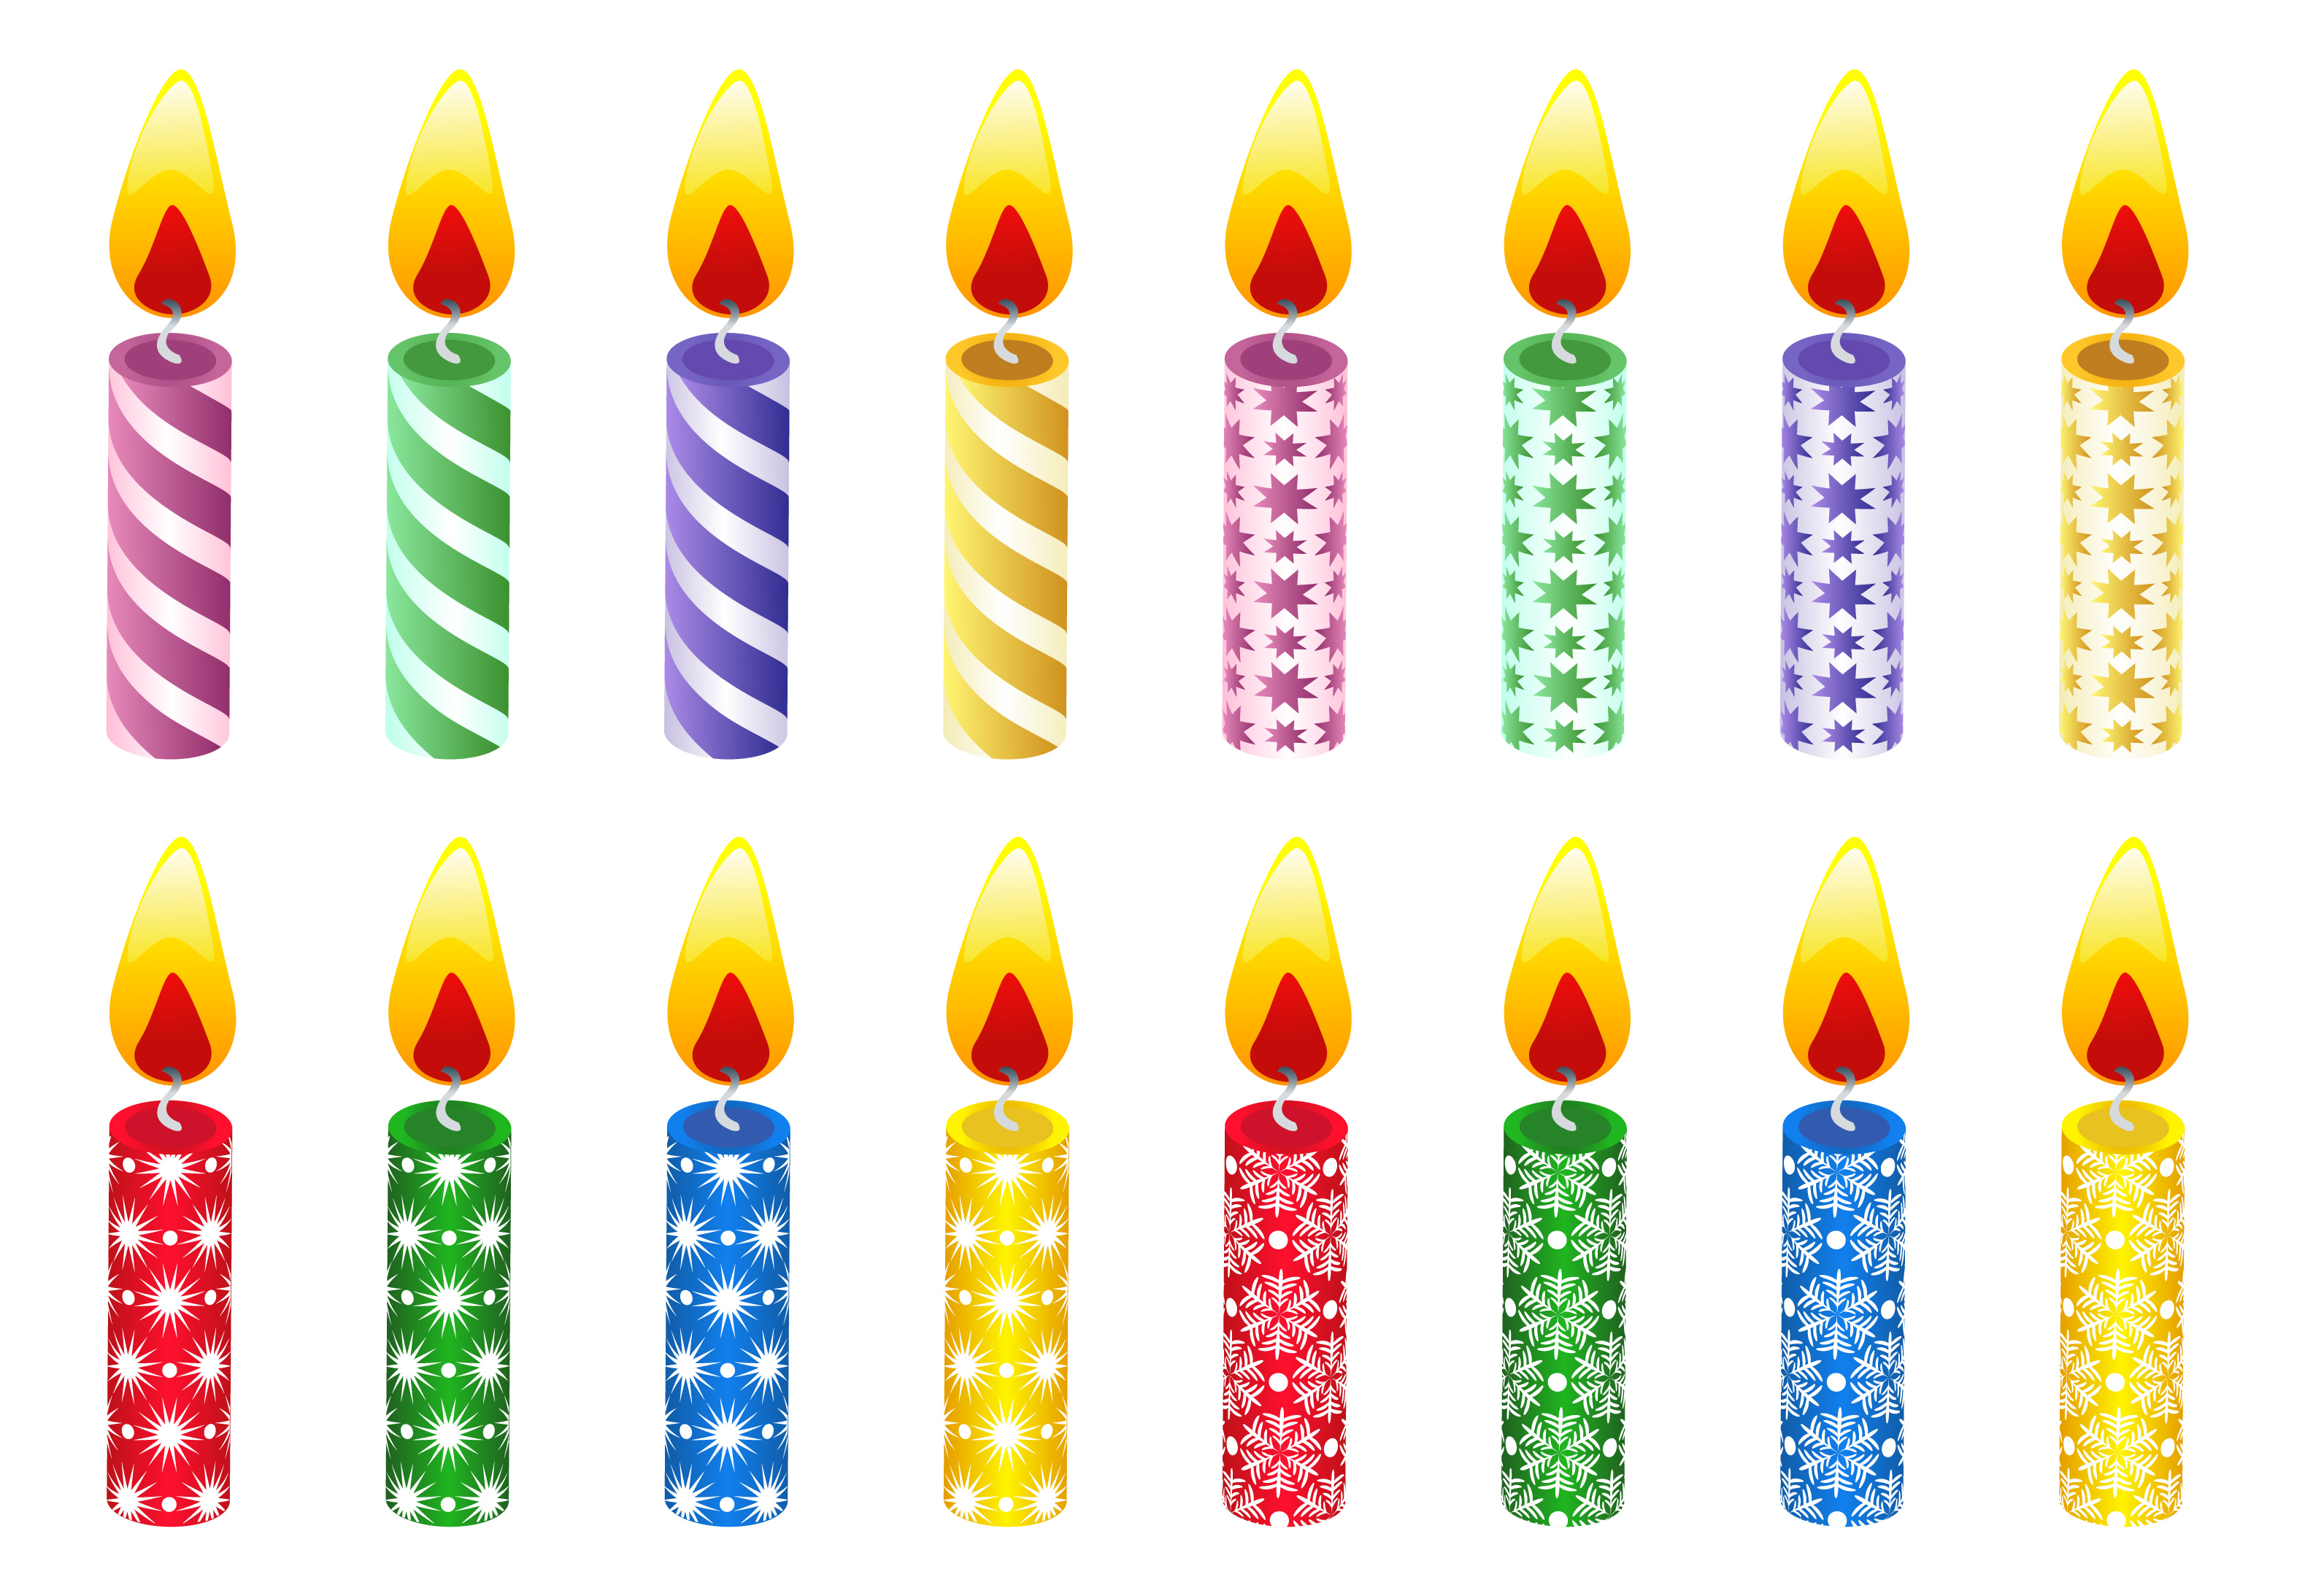 This Is A Great Set Of Birthday Candles To Use For Games Or Classroom